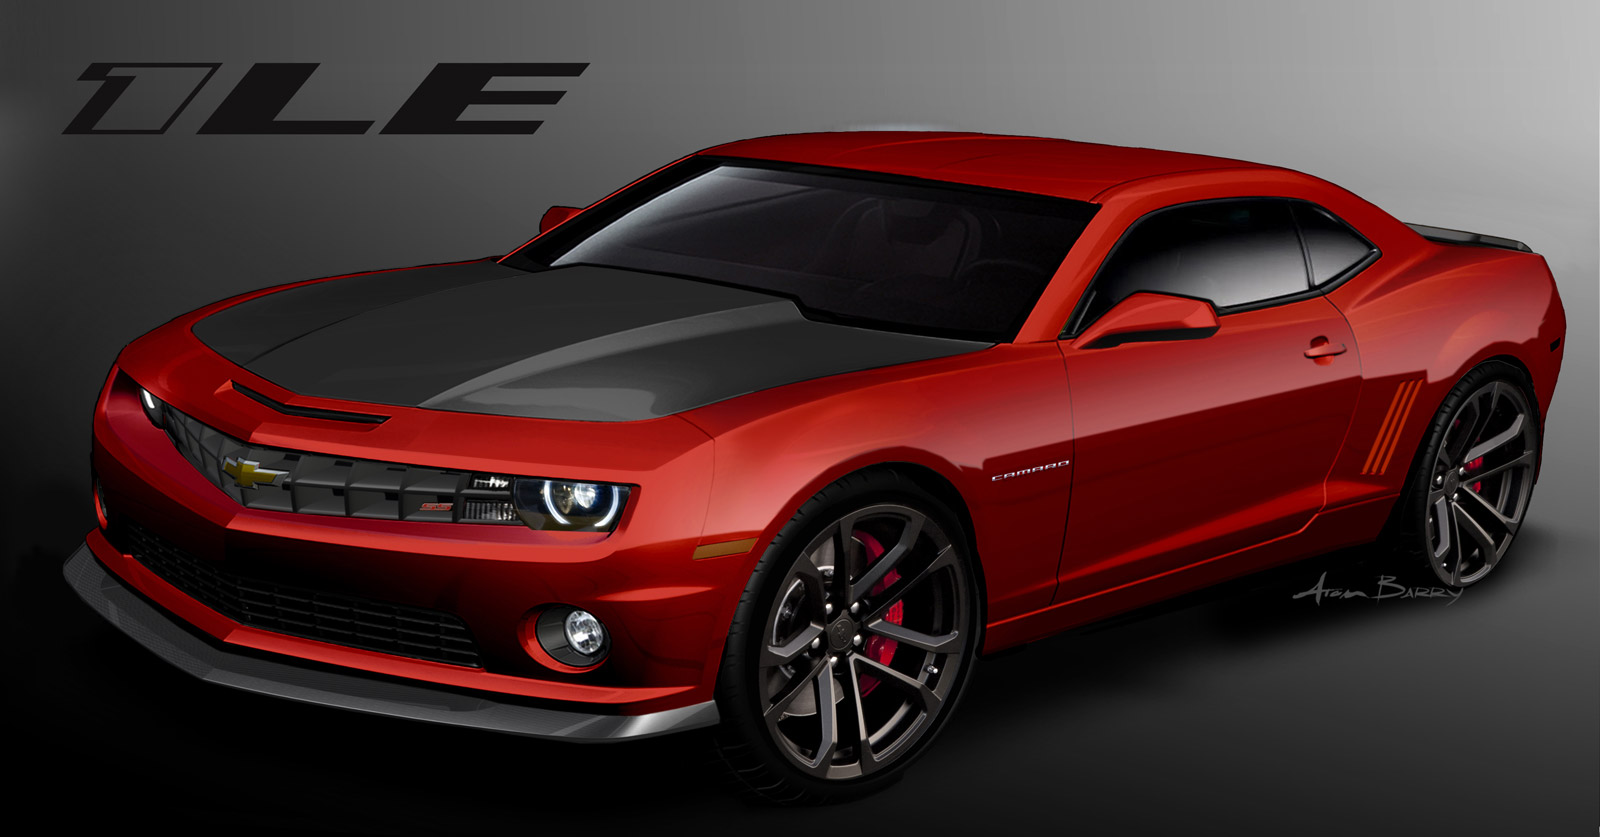 2013 Chevy Camaro Gets Updated Interior And New 1LE Package